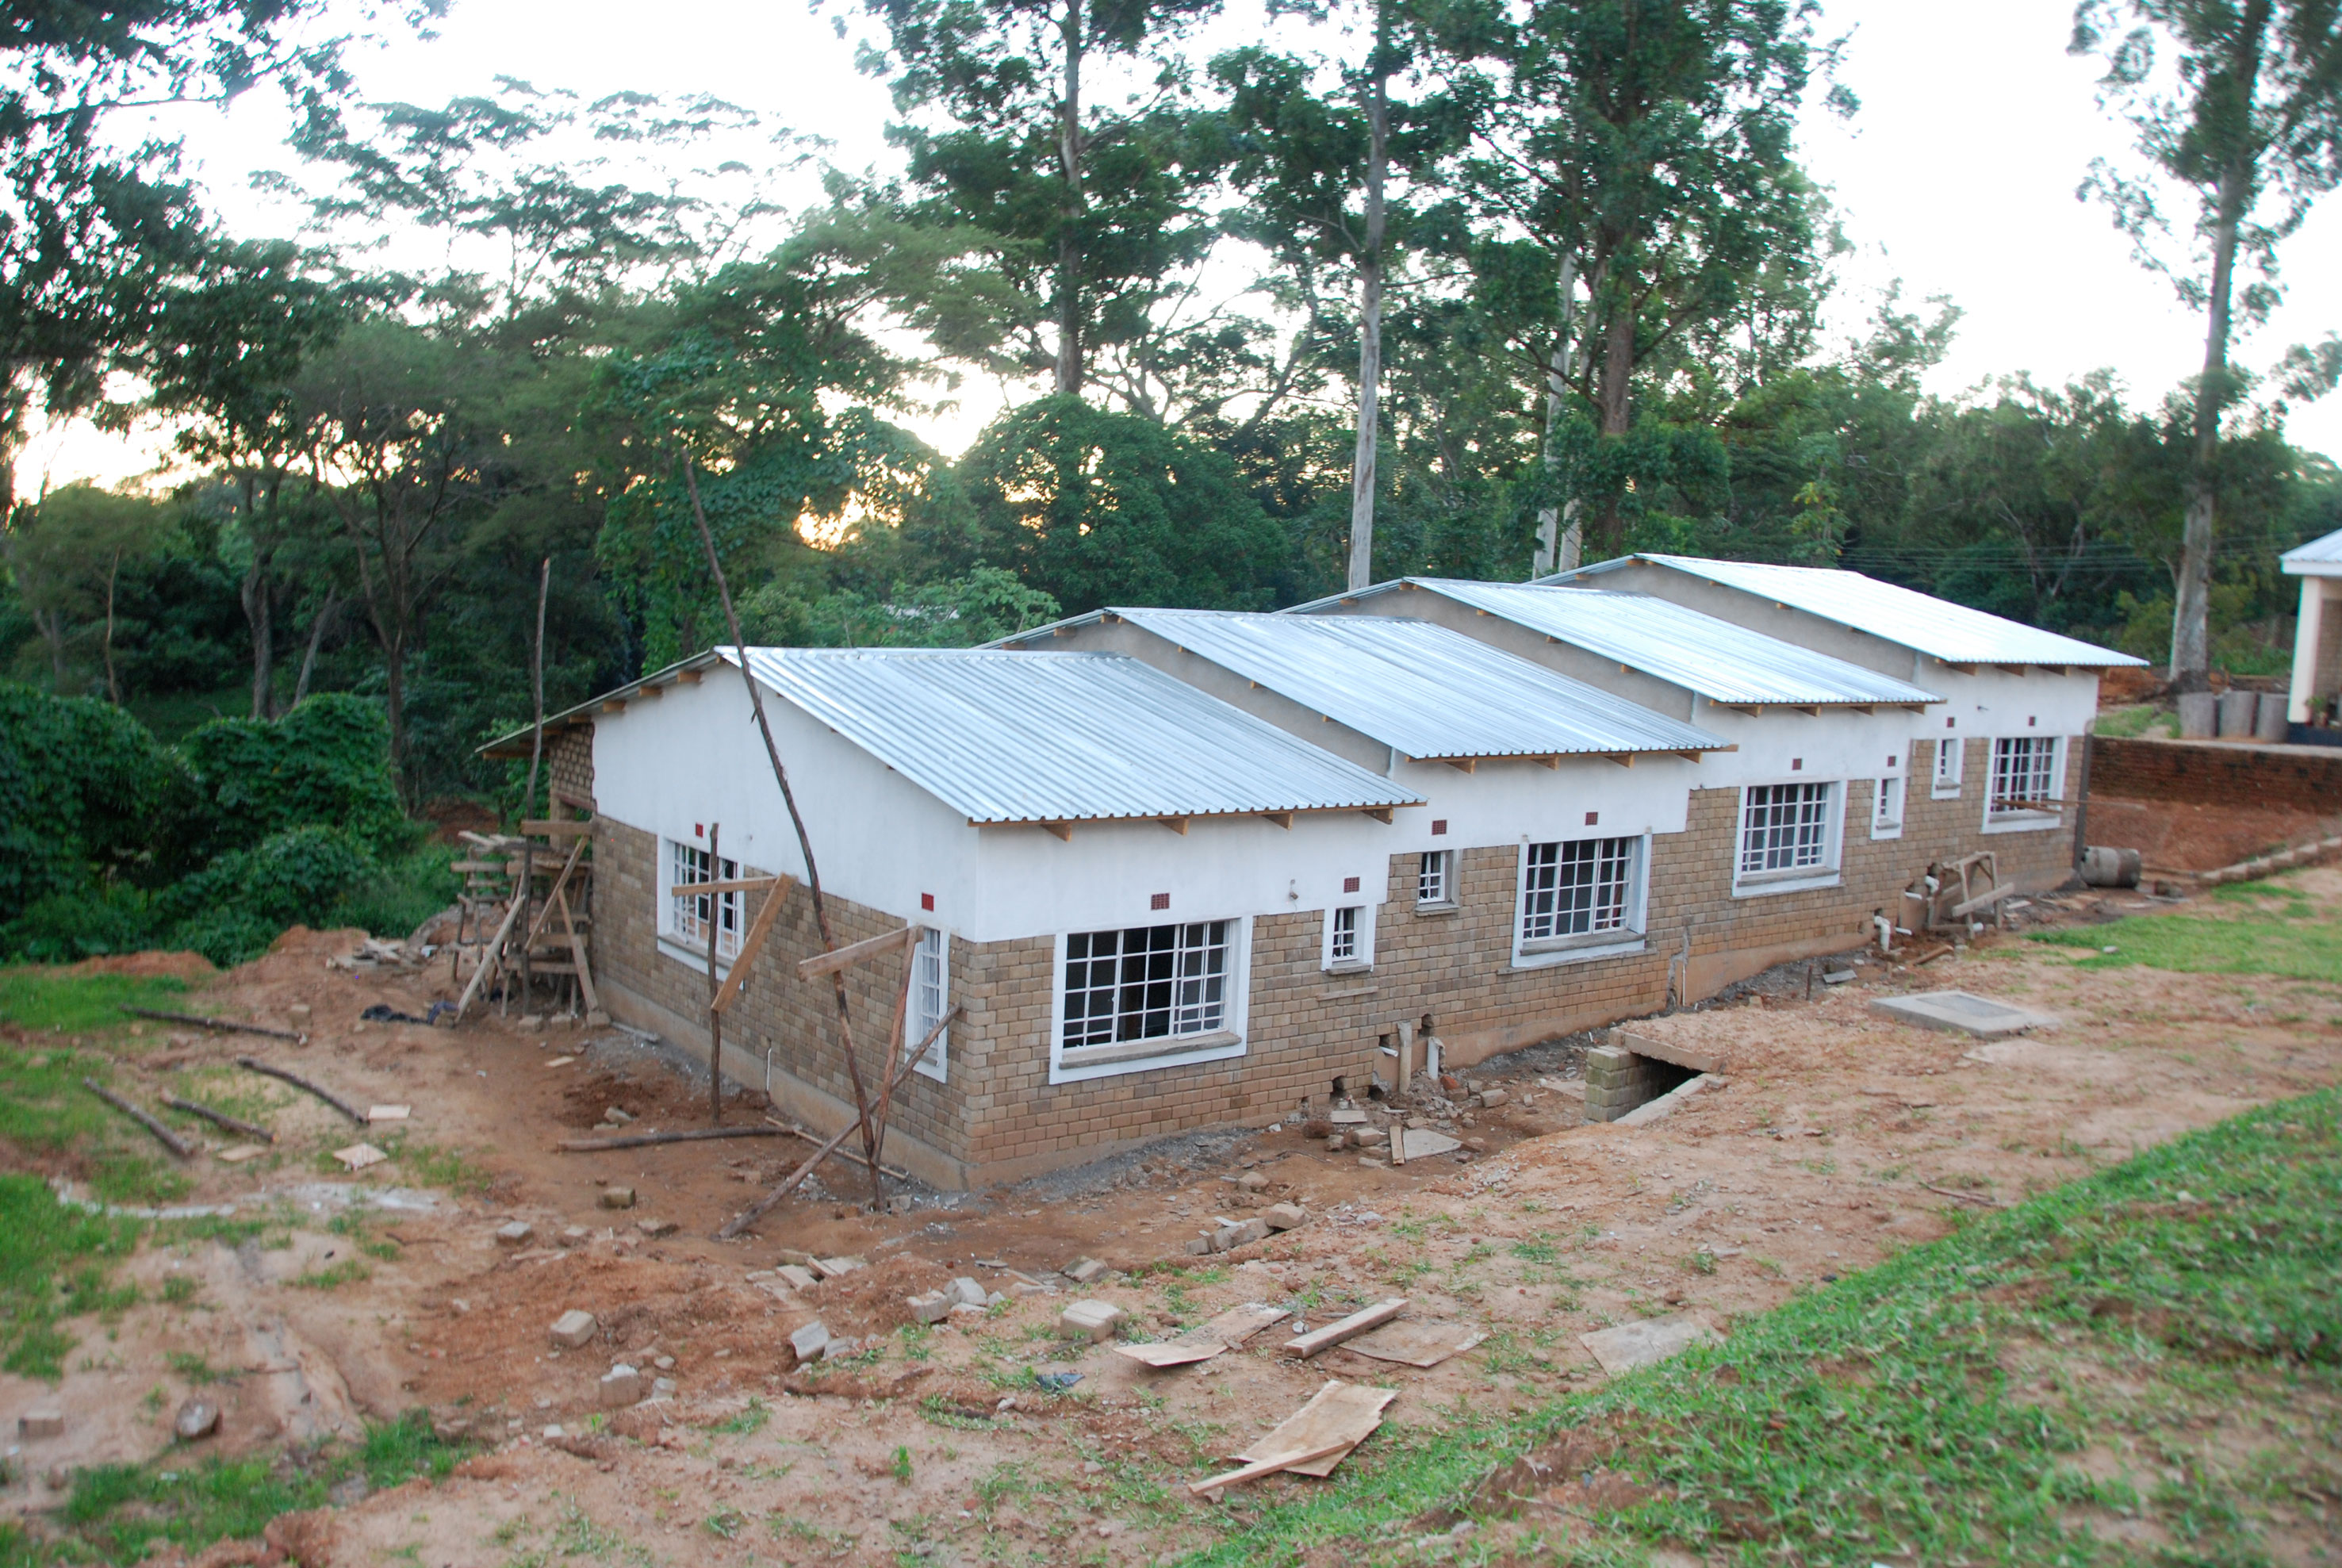 Building volunteers accommodation